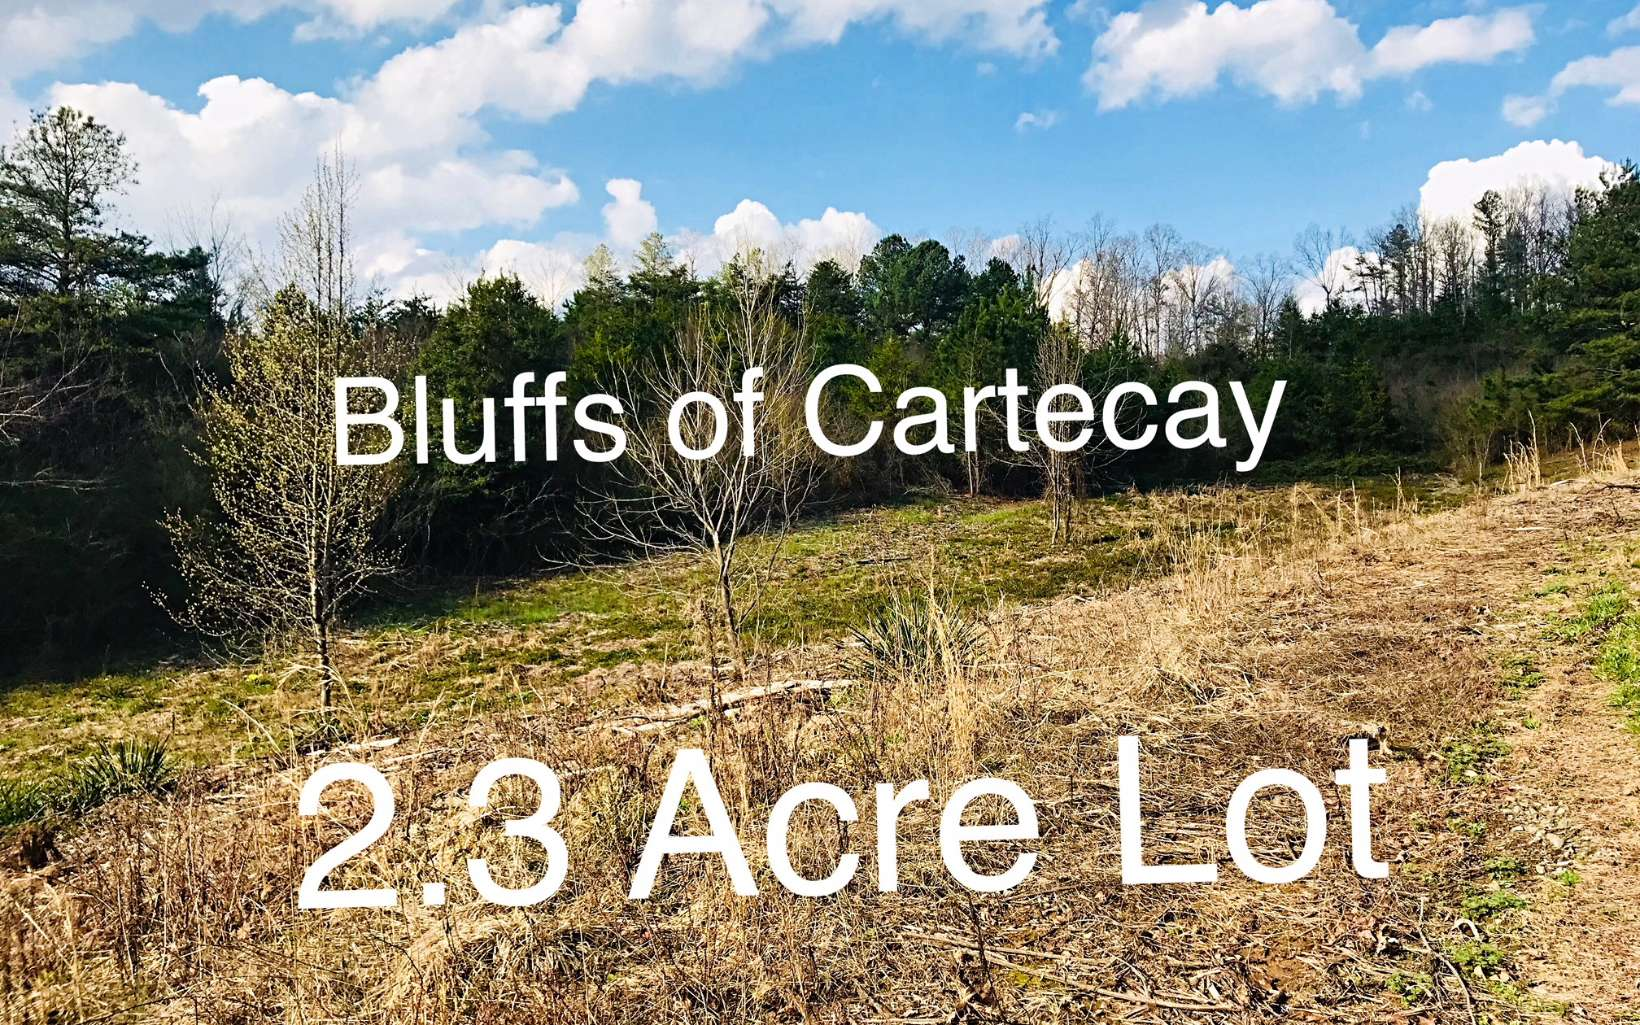 BLUFFS OF CARTECAY